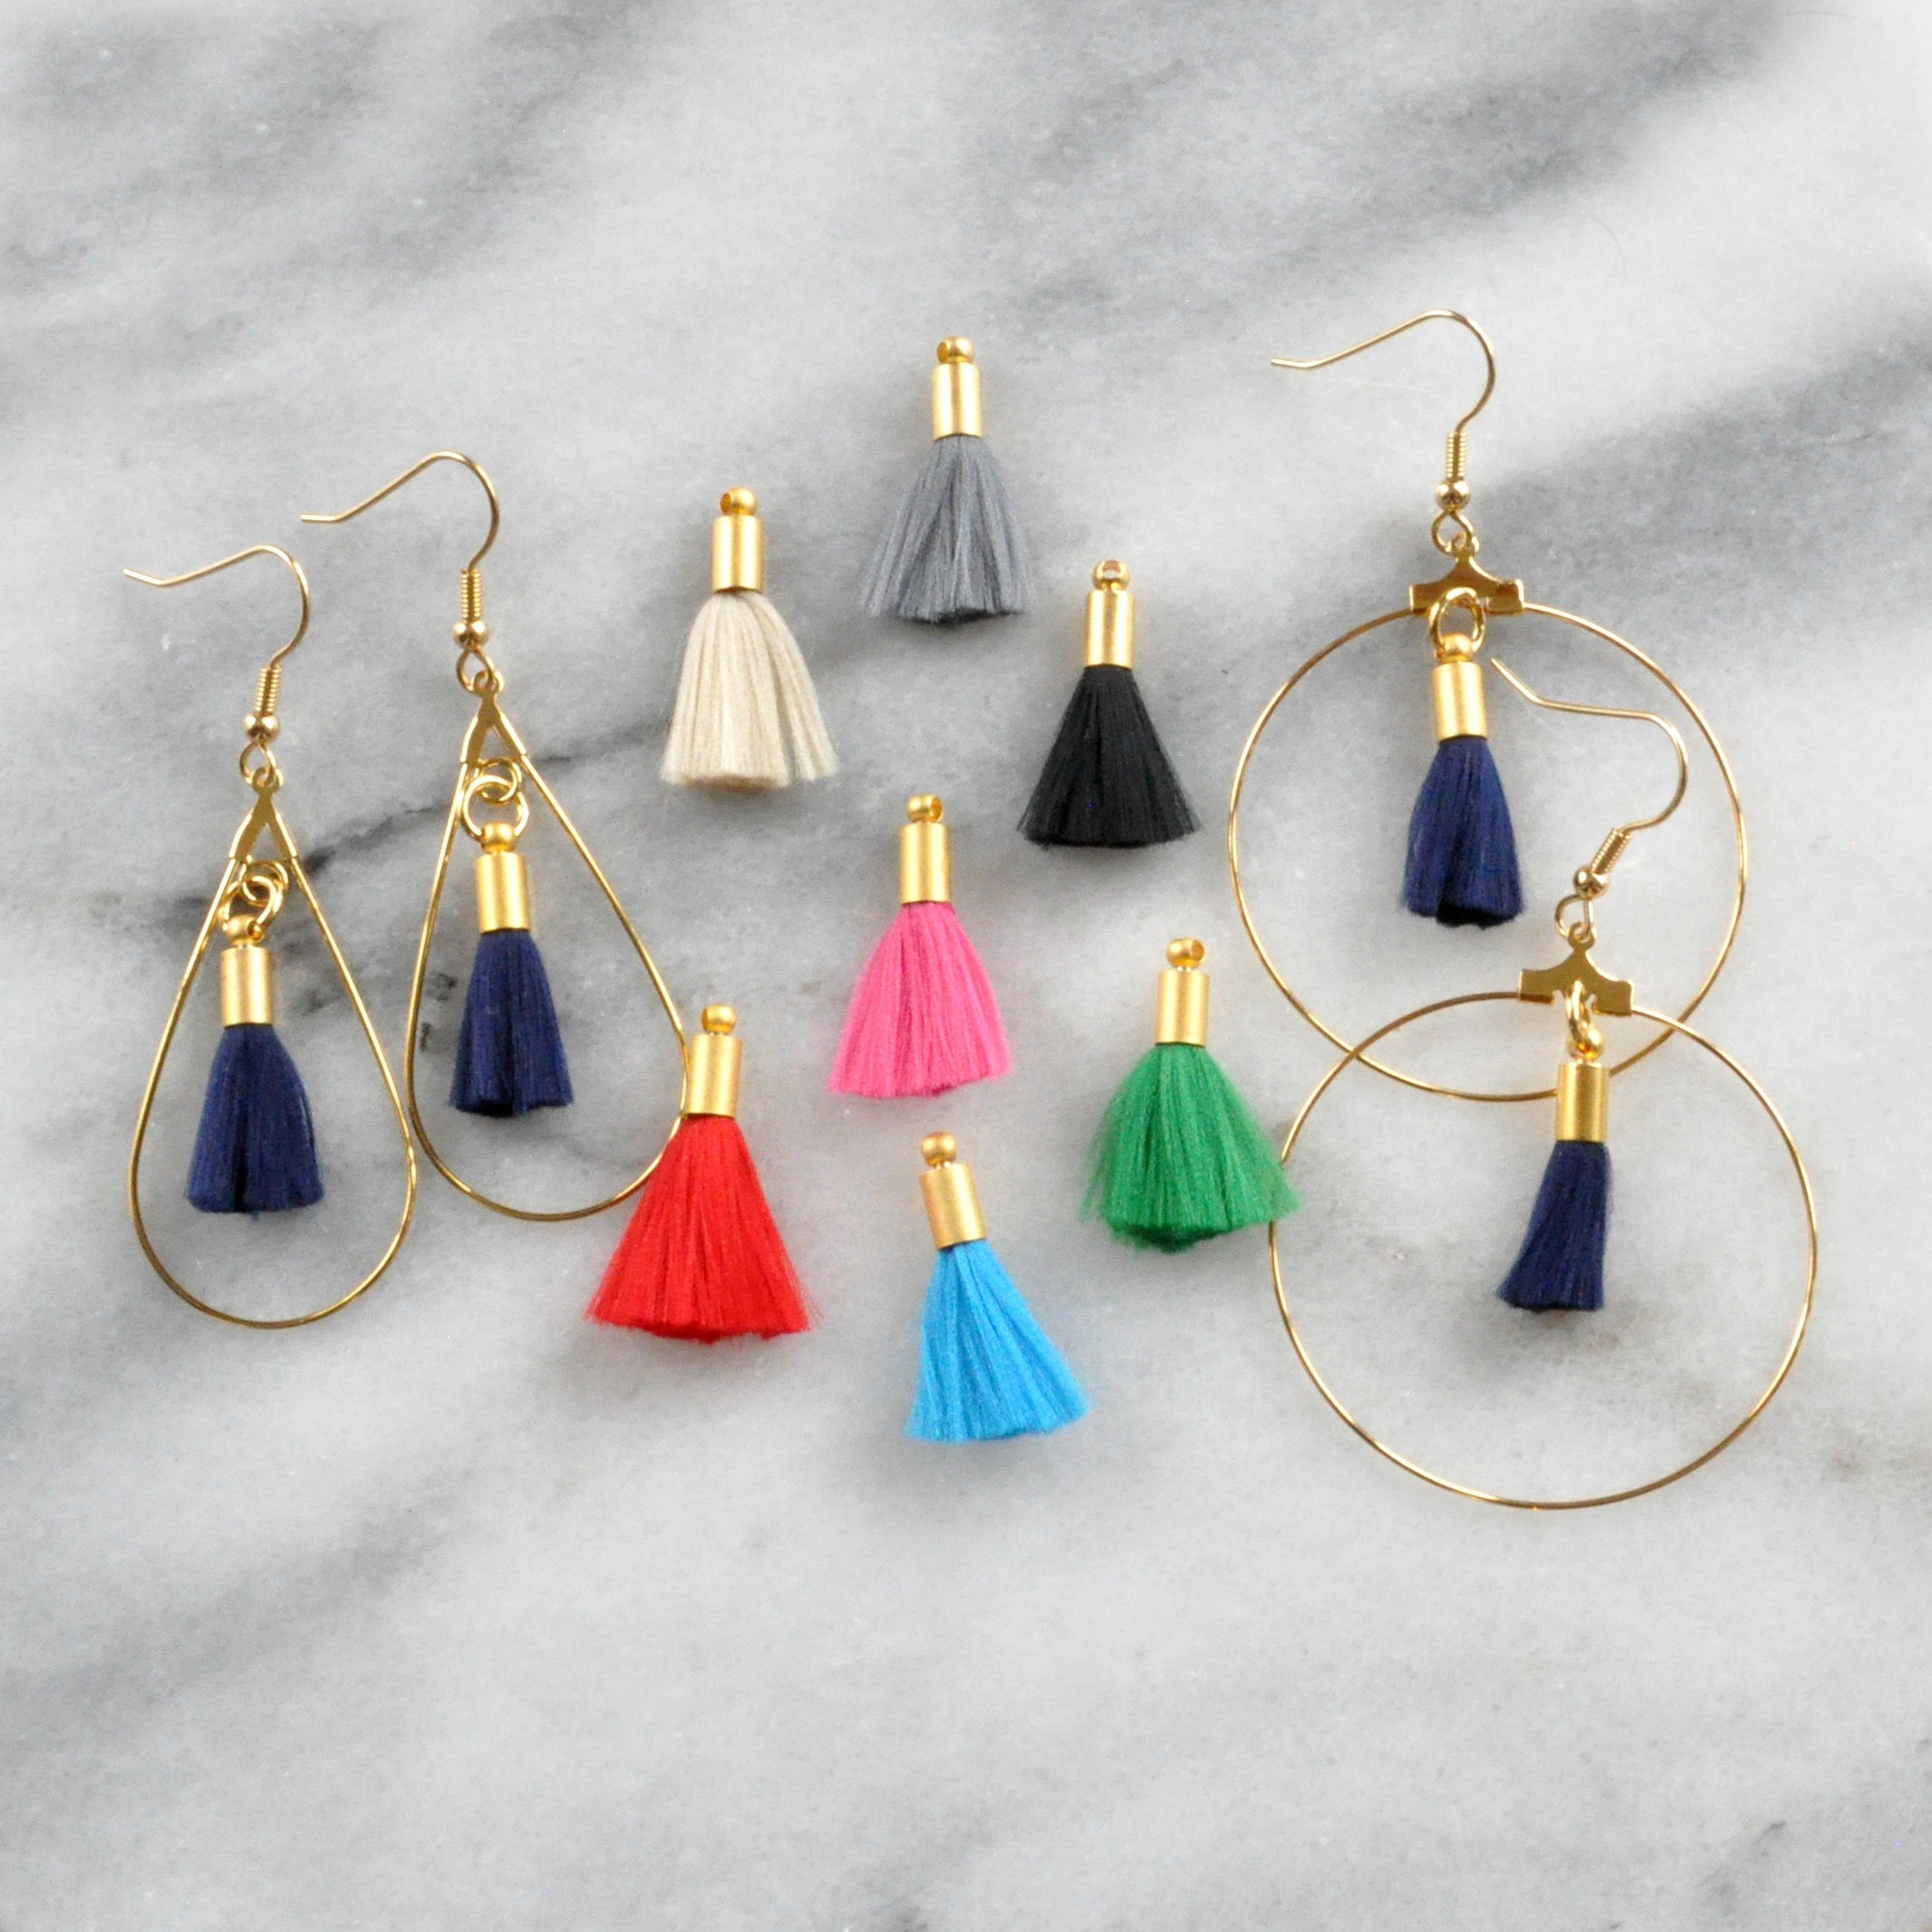 Libby & Smee tassel hoop earrings in teadrop shape and round shape with color options: navy blue, beige, grey, black, pink, red, turquoise, green